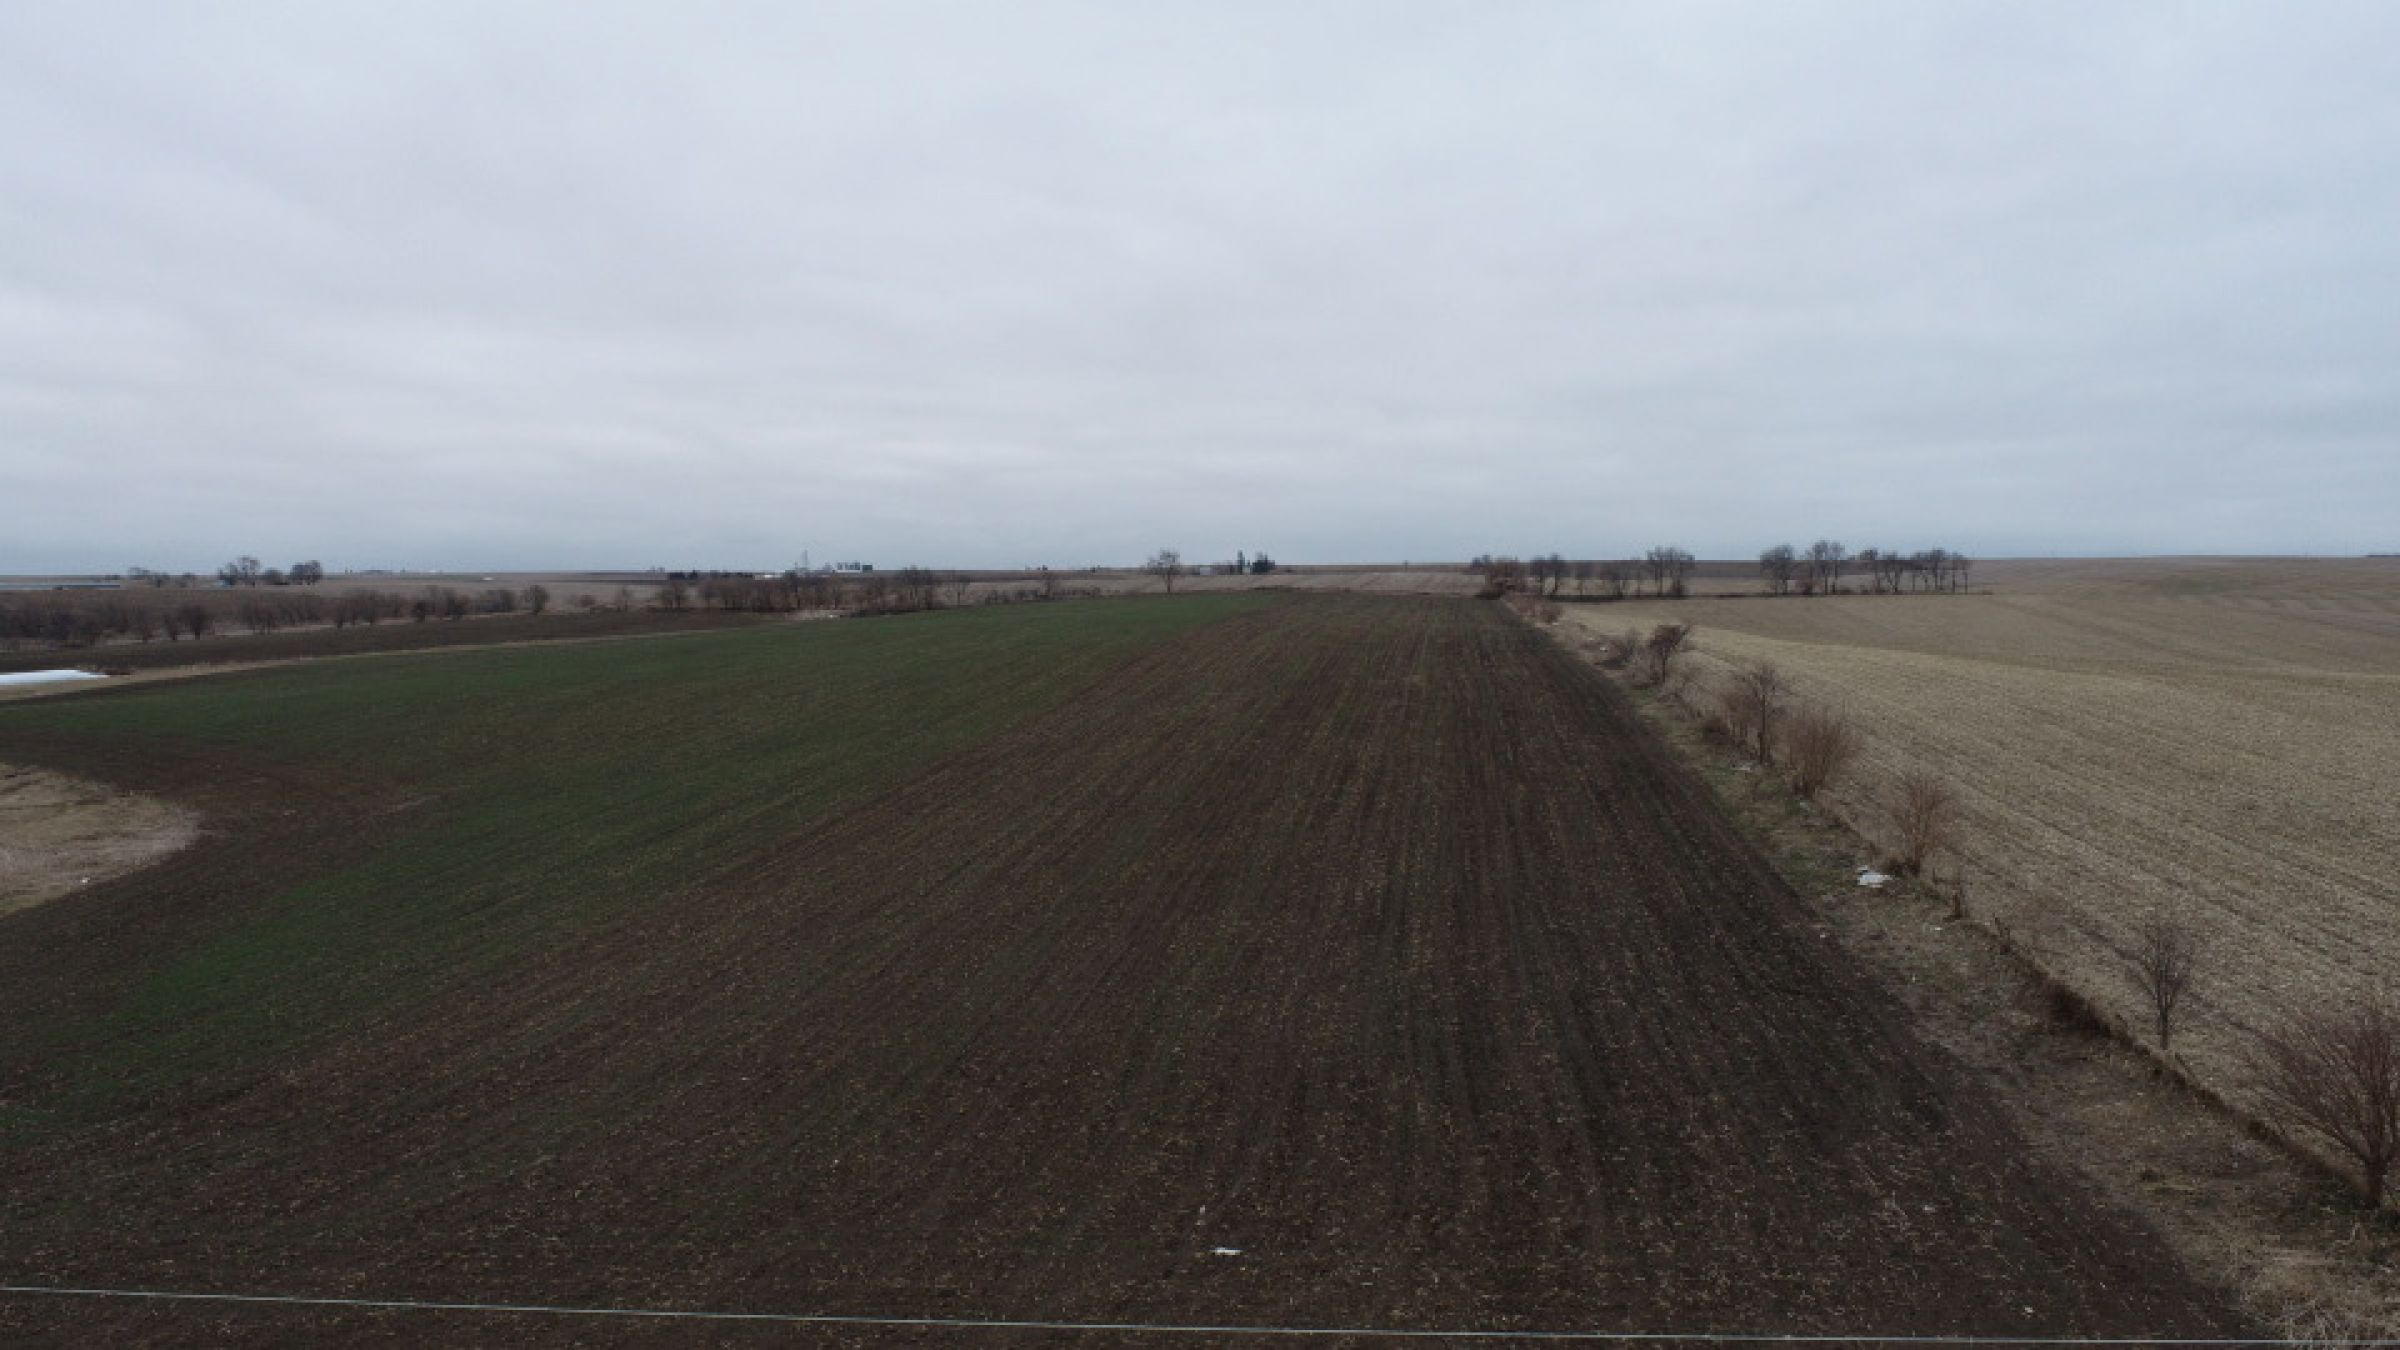 land-lafayette-county-wisconsin-47-acres-listing-number-15428-17-2021-03-25-172104.JPG